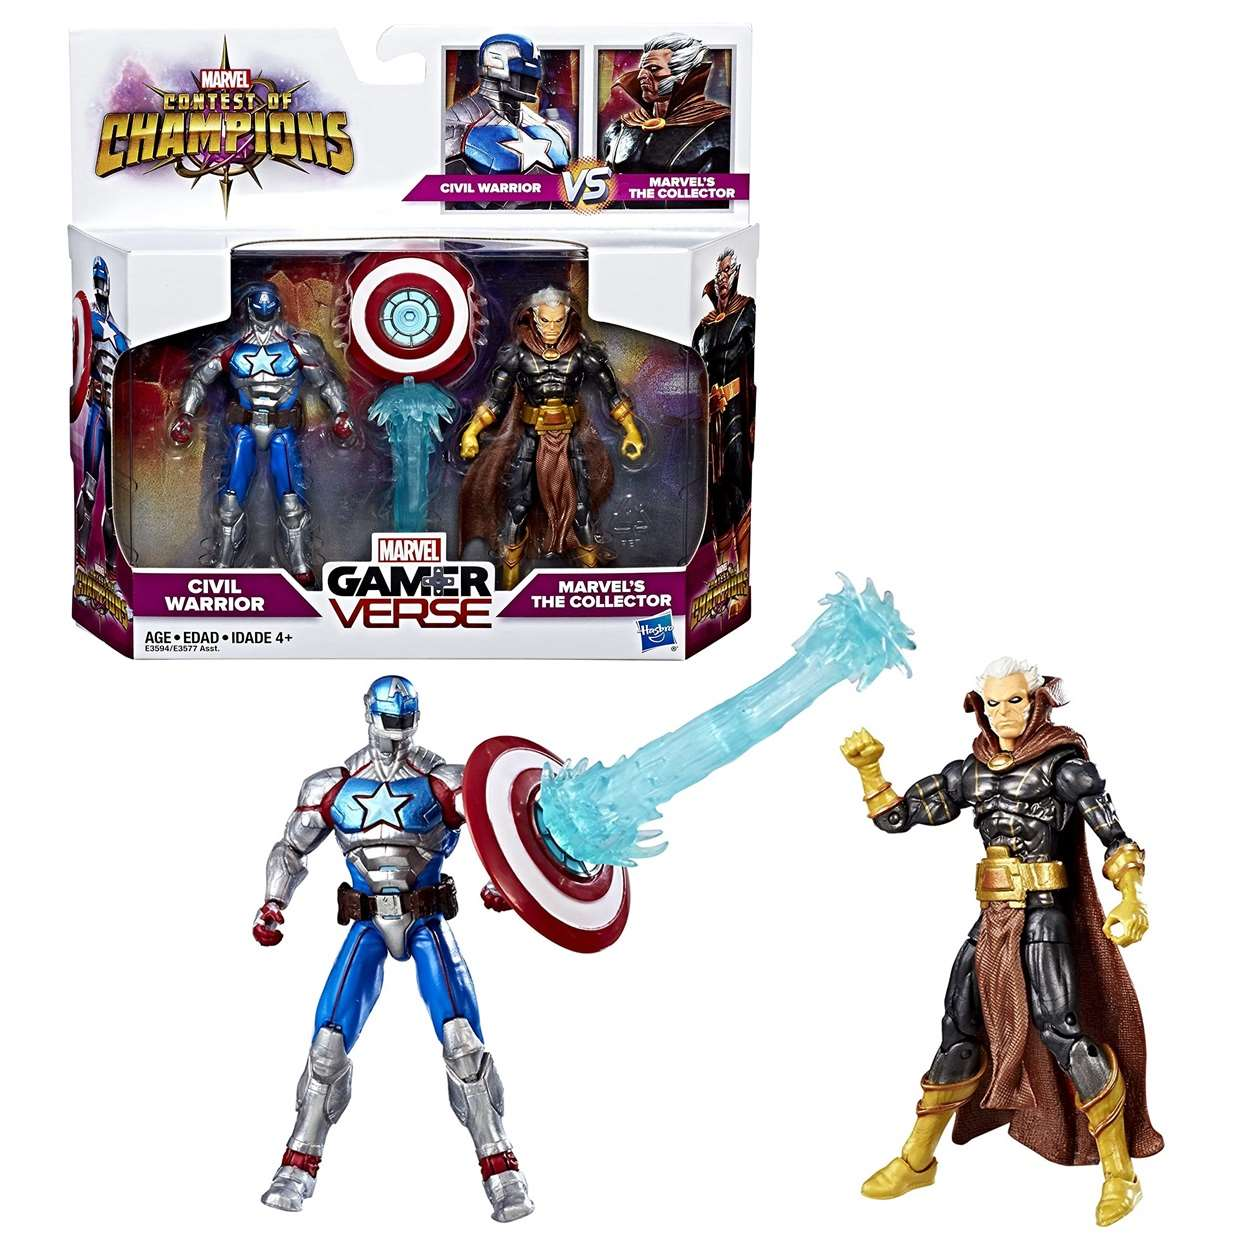 Two Pack Civil Warrior Vs Marvel The Collector Gamerverse